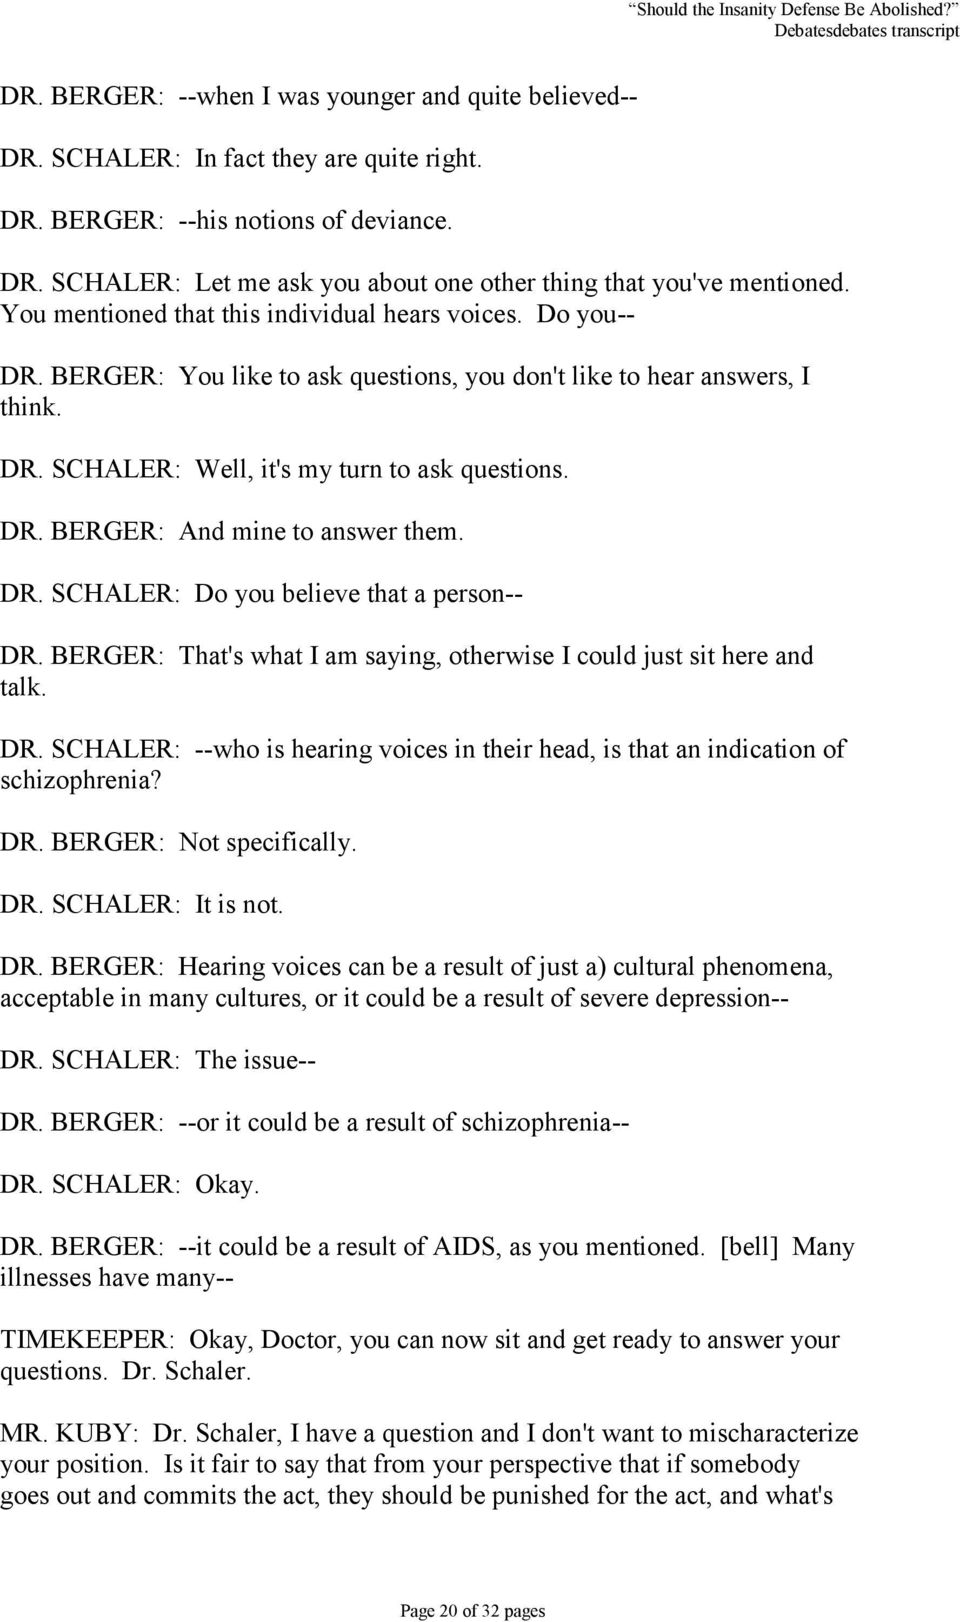 DR. SCHALER: Do you believe that a person-- DR. BERGER: That's what I am saying, otherwise I could just sit here and talk. DR. SCHALER: --who is hearing voices in their head, is that an indication of schizophrenia?